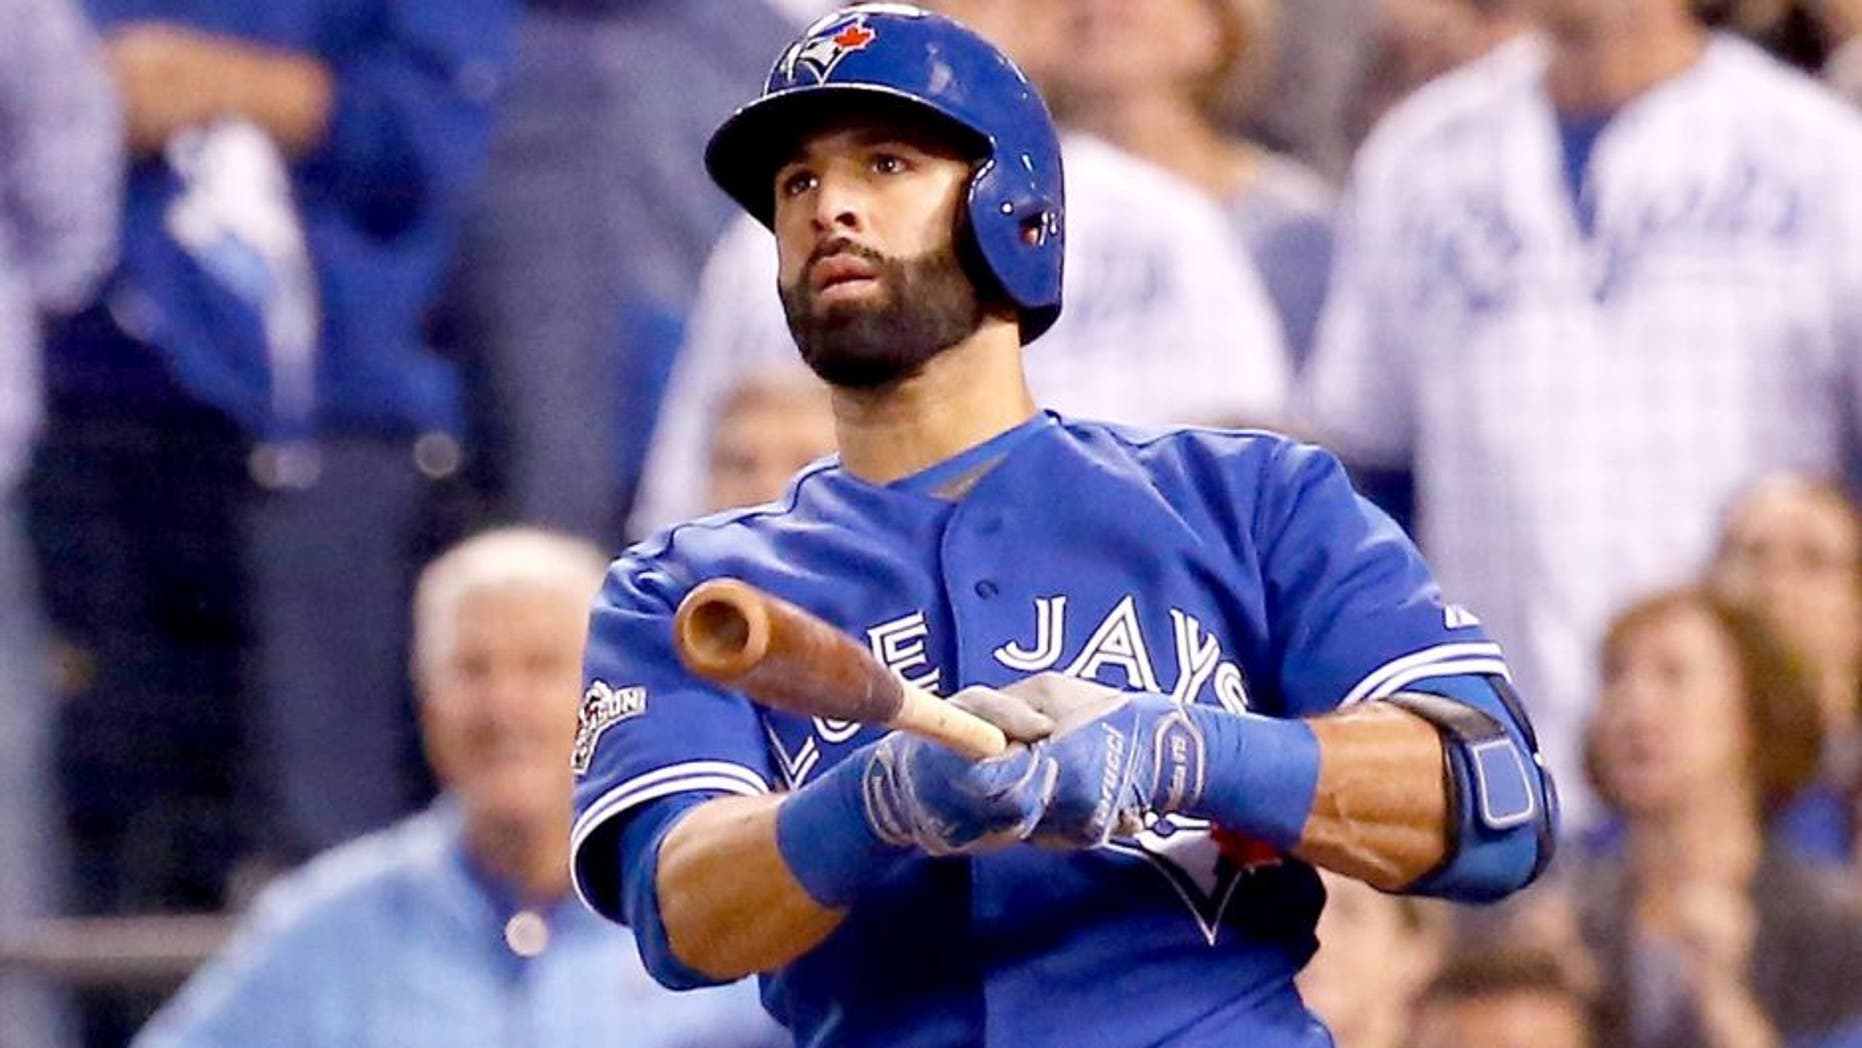 KANSAS CITY, MO - OCTOBER 23: Jose Bautista #19 of the Toronto Blue Jays hits a two-run home run in the eighth inning against the Kansas City Royals in game six of the 2015 MLB American League Championship Series at Kauffman Stadium on October 23, 2015 in Kansas City, Missouri. (Photo by Rob Carr/Getty Images)